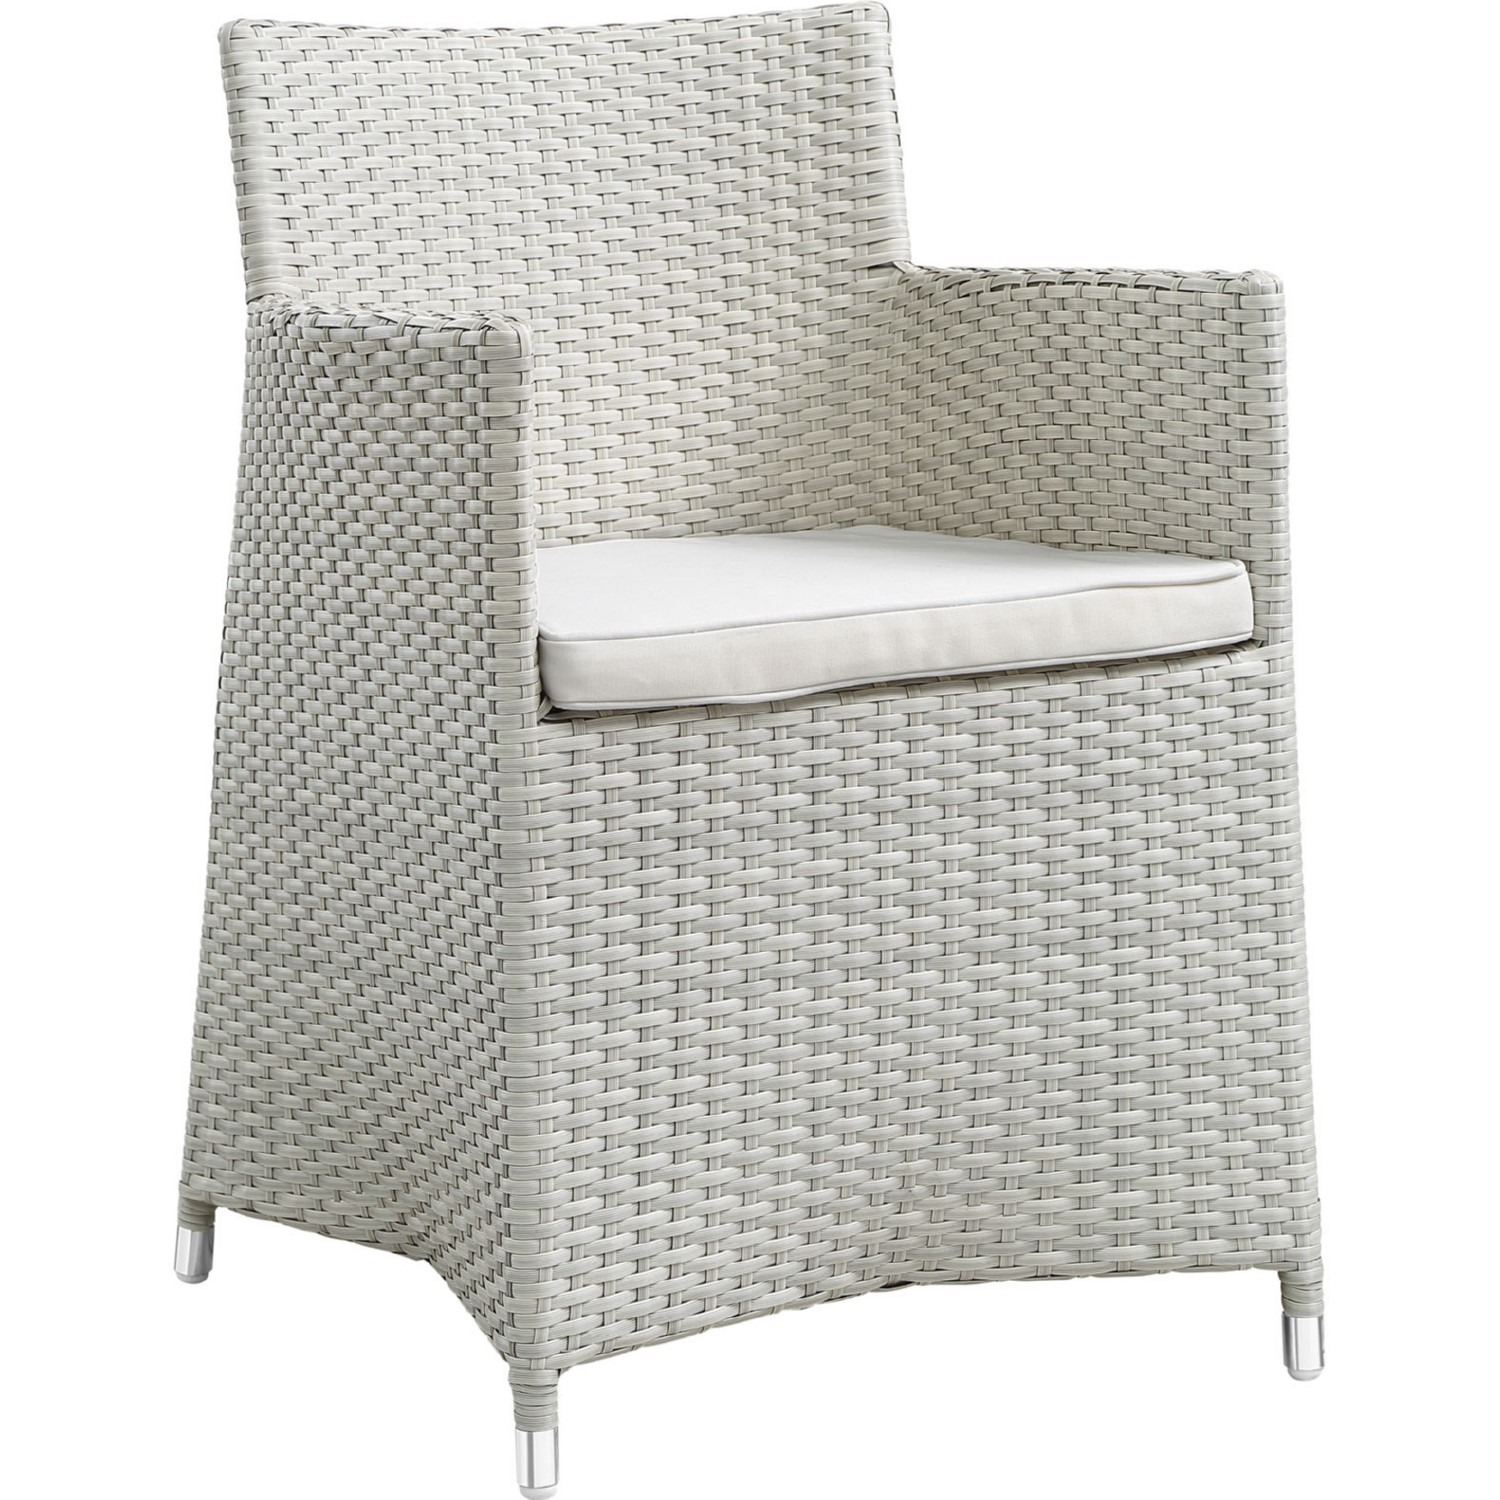 Modern 5-Piece Dining Set In Gray Rattan Weave - image-1